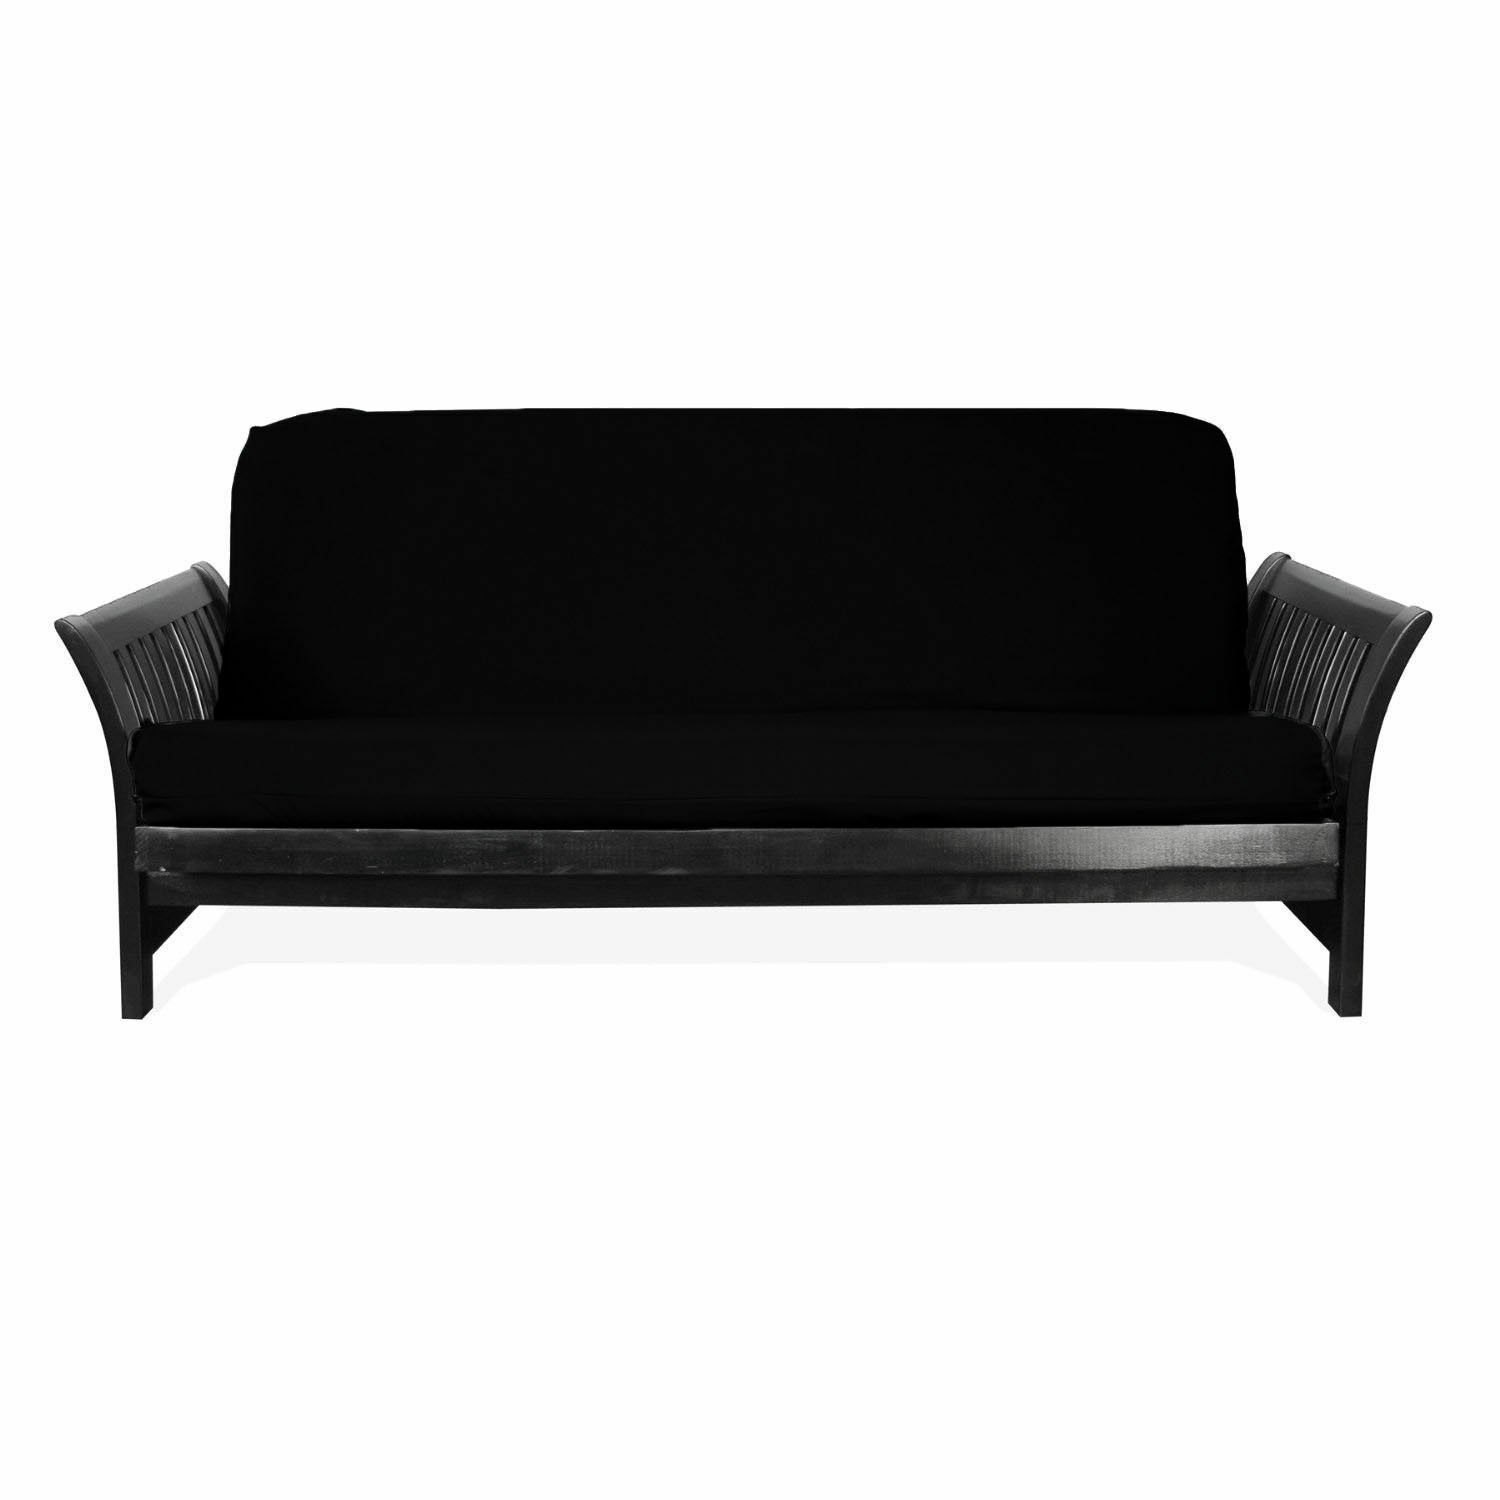 Full Queen Size Futon Mattresses Cover Slipcover Thick 6 8 Or 10 Inch